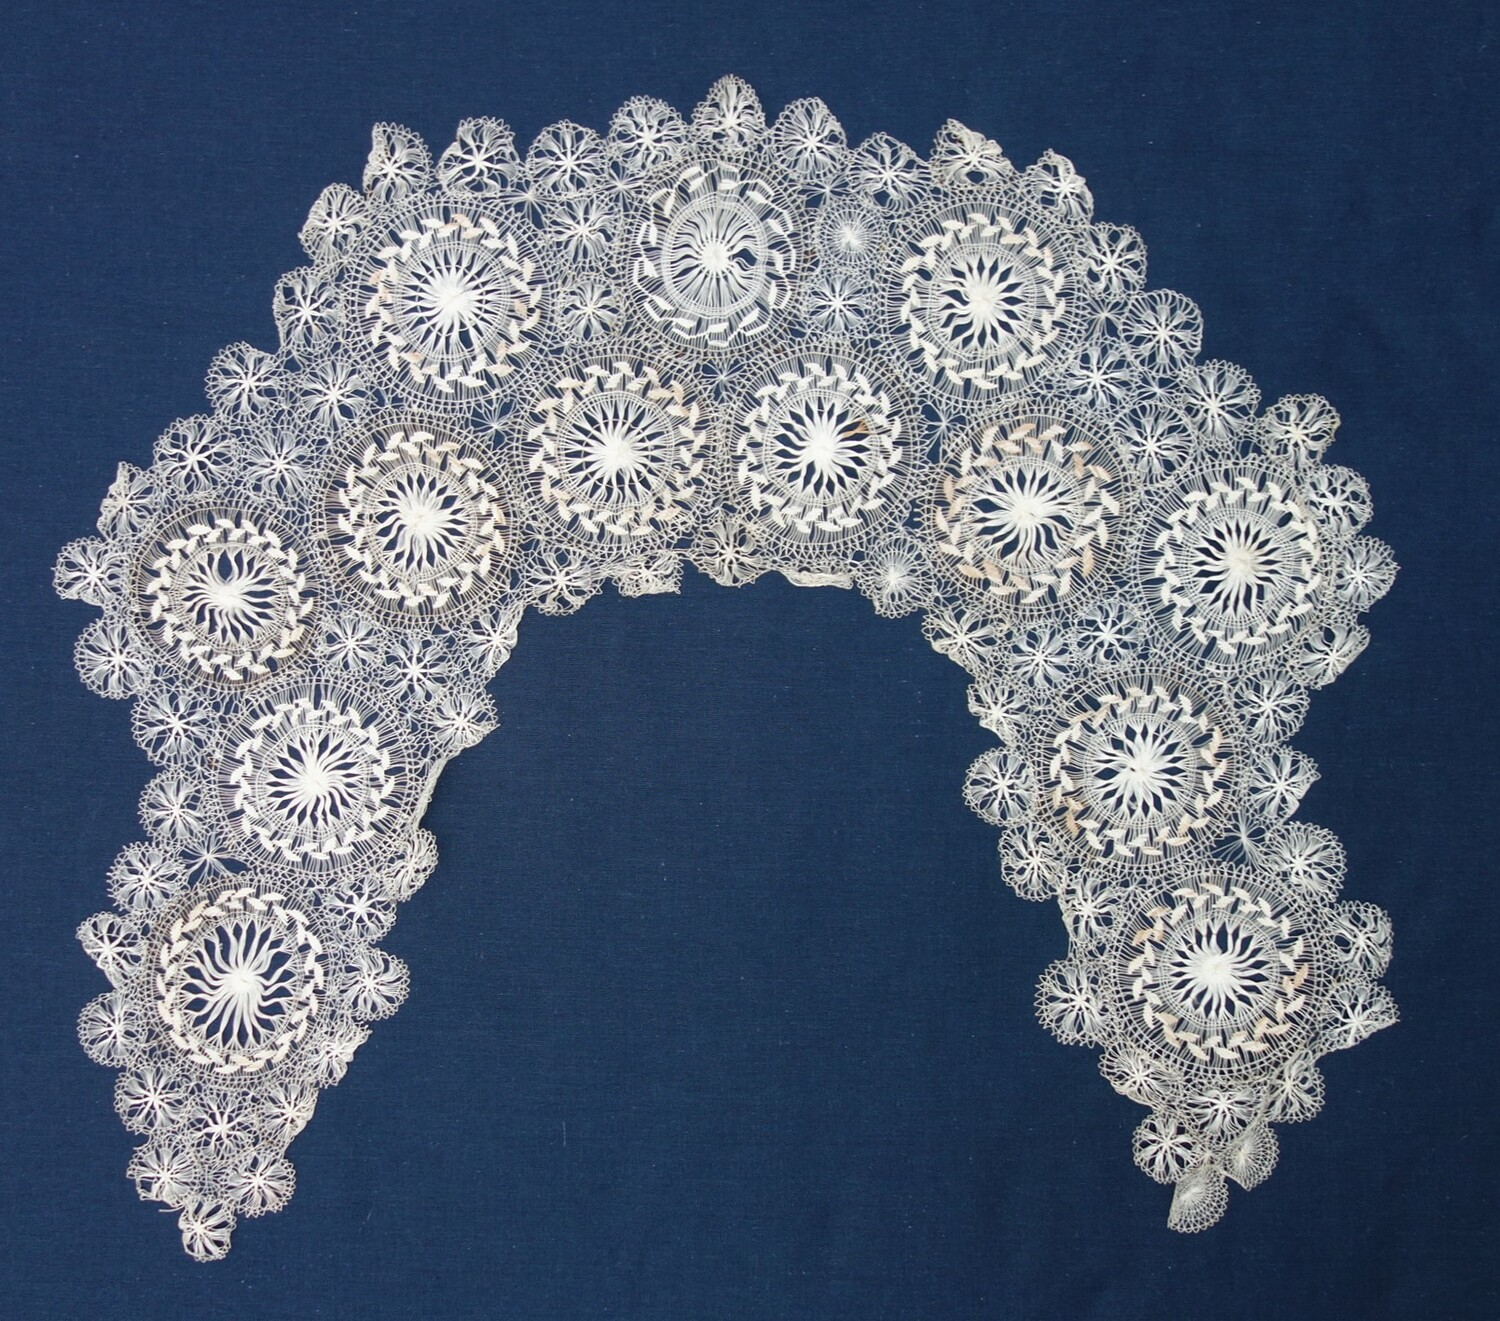 Tenerife lace collar, late 19th century (TRC 2020.0462).